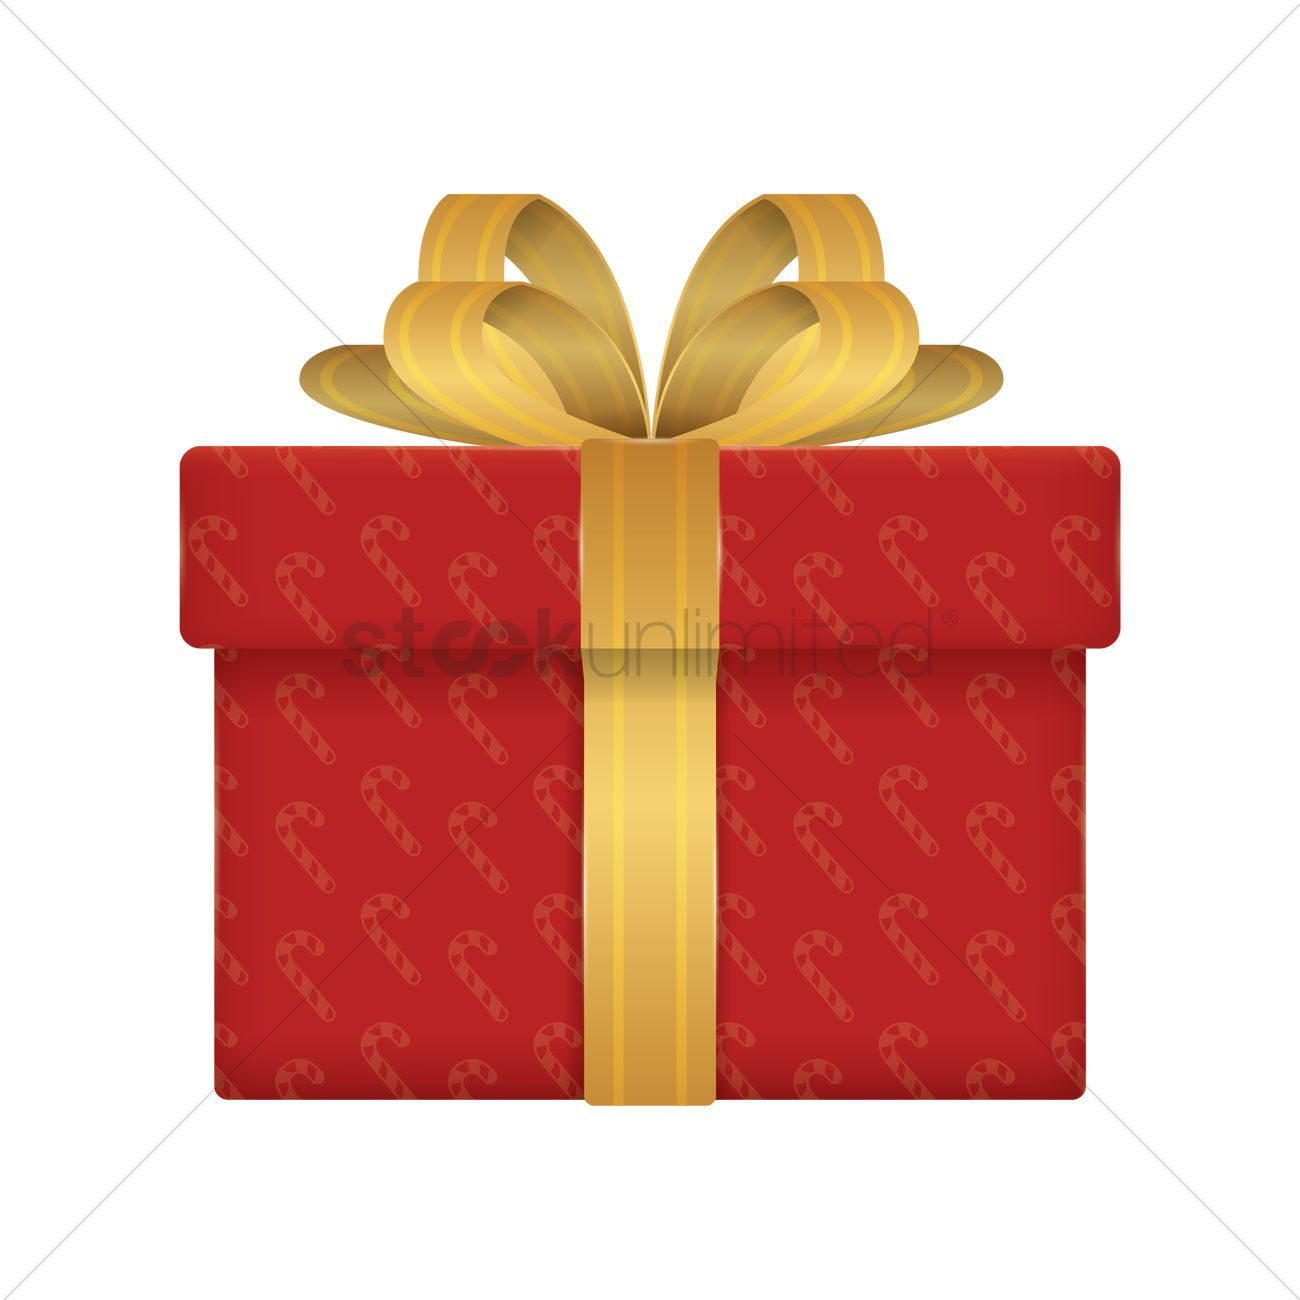 Christmas Gift Box Vector Image 1934703 Stockunlimited Rh Com Free Download